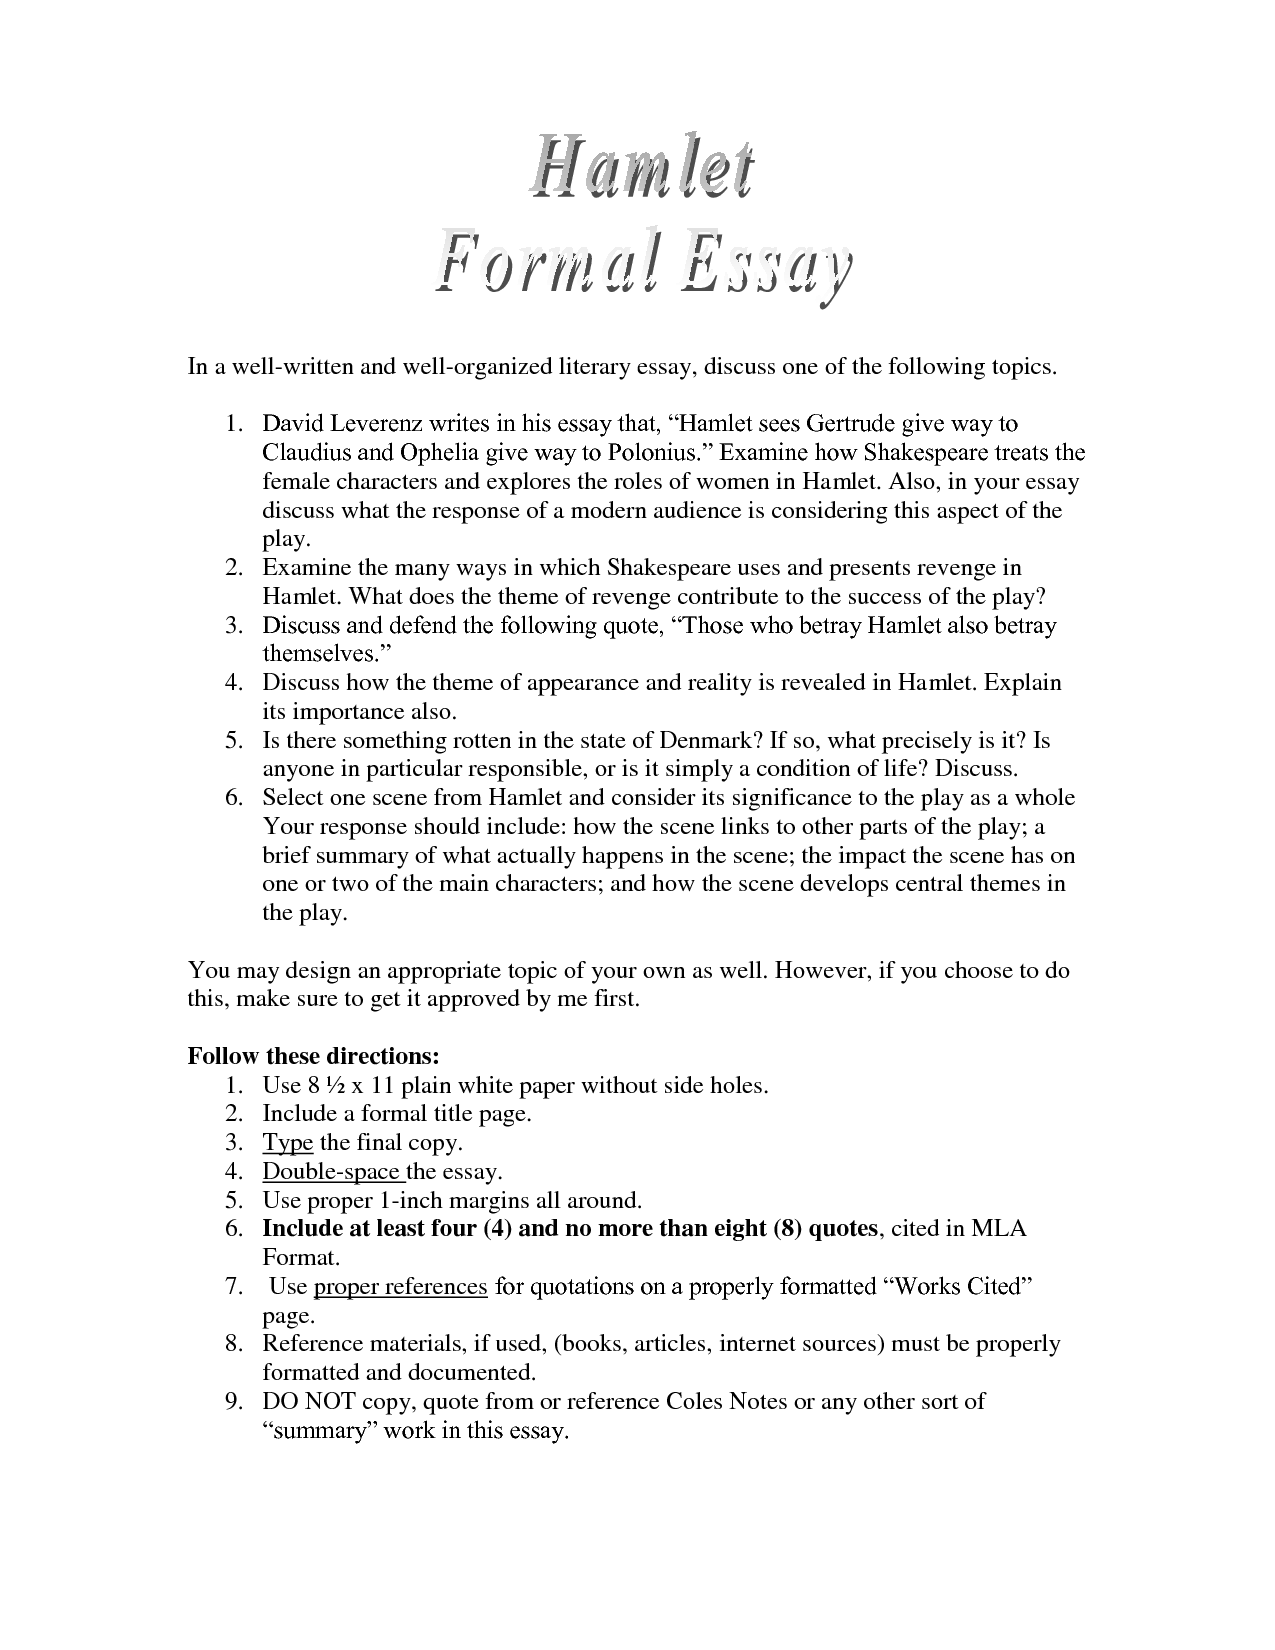 002 Essay Example Topics Hamlet Revenge Theme Madness L Awful High School Argumentative Full